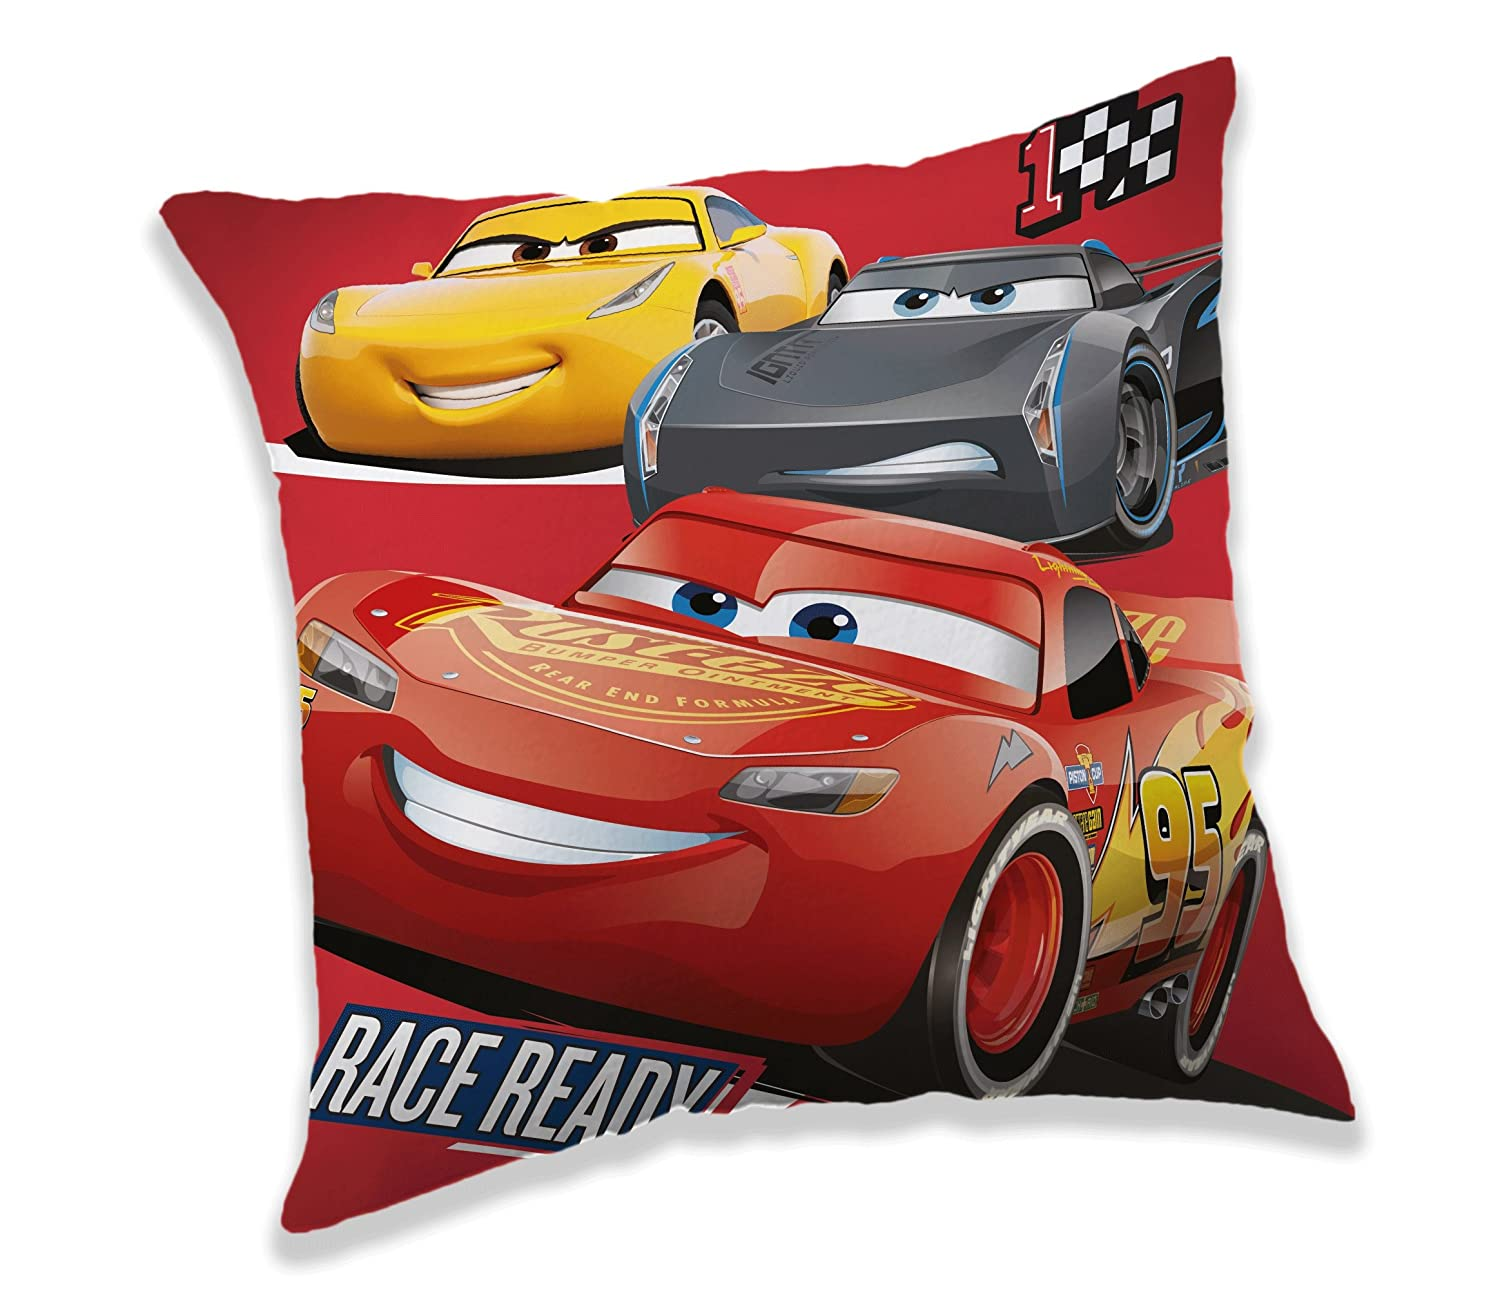 Jerry Fabrics Disney Cars Character Cushion Decorative Throw Pillows for Kids, Polyester, Multi-Colour, 40 x 40 x 5 cm JERRY FABRICS s.r.o. 17CS242